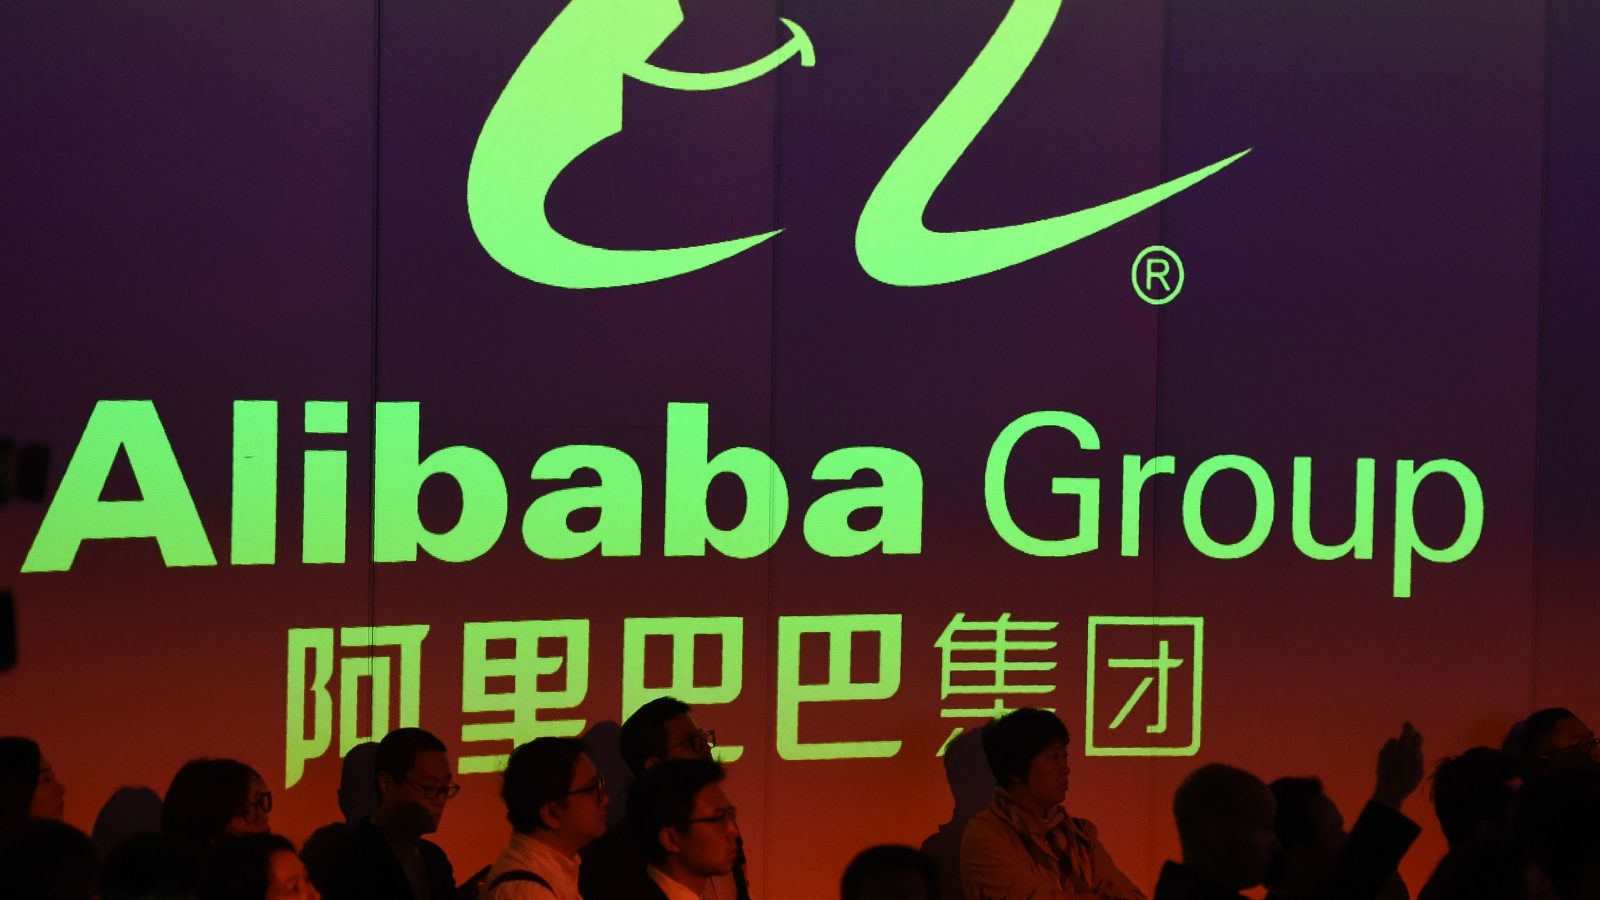 On August 6, a female employee walked into a cafeteria at Alibaba's corporate campus in Hangzhou, a megaphone and leaflets in her hands. People ambl